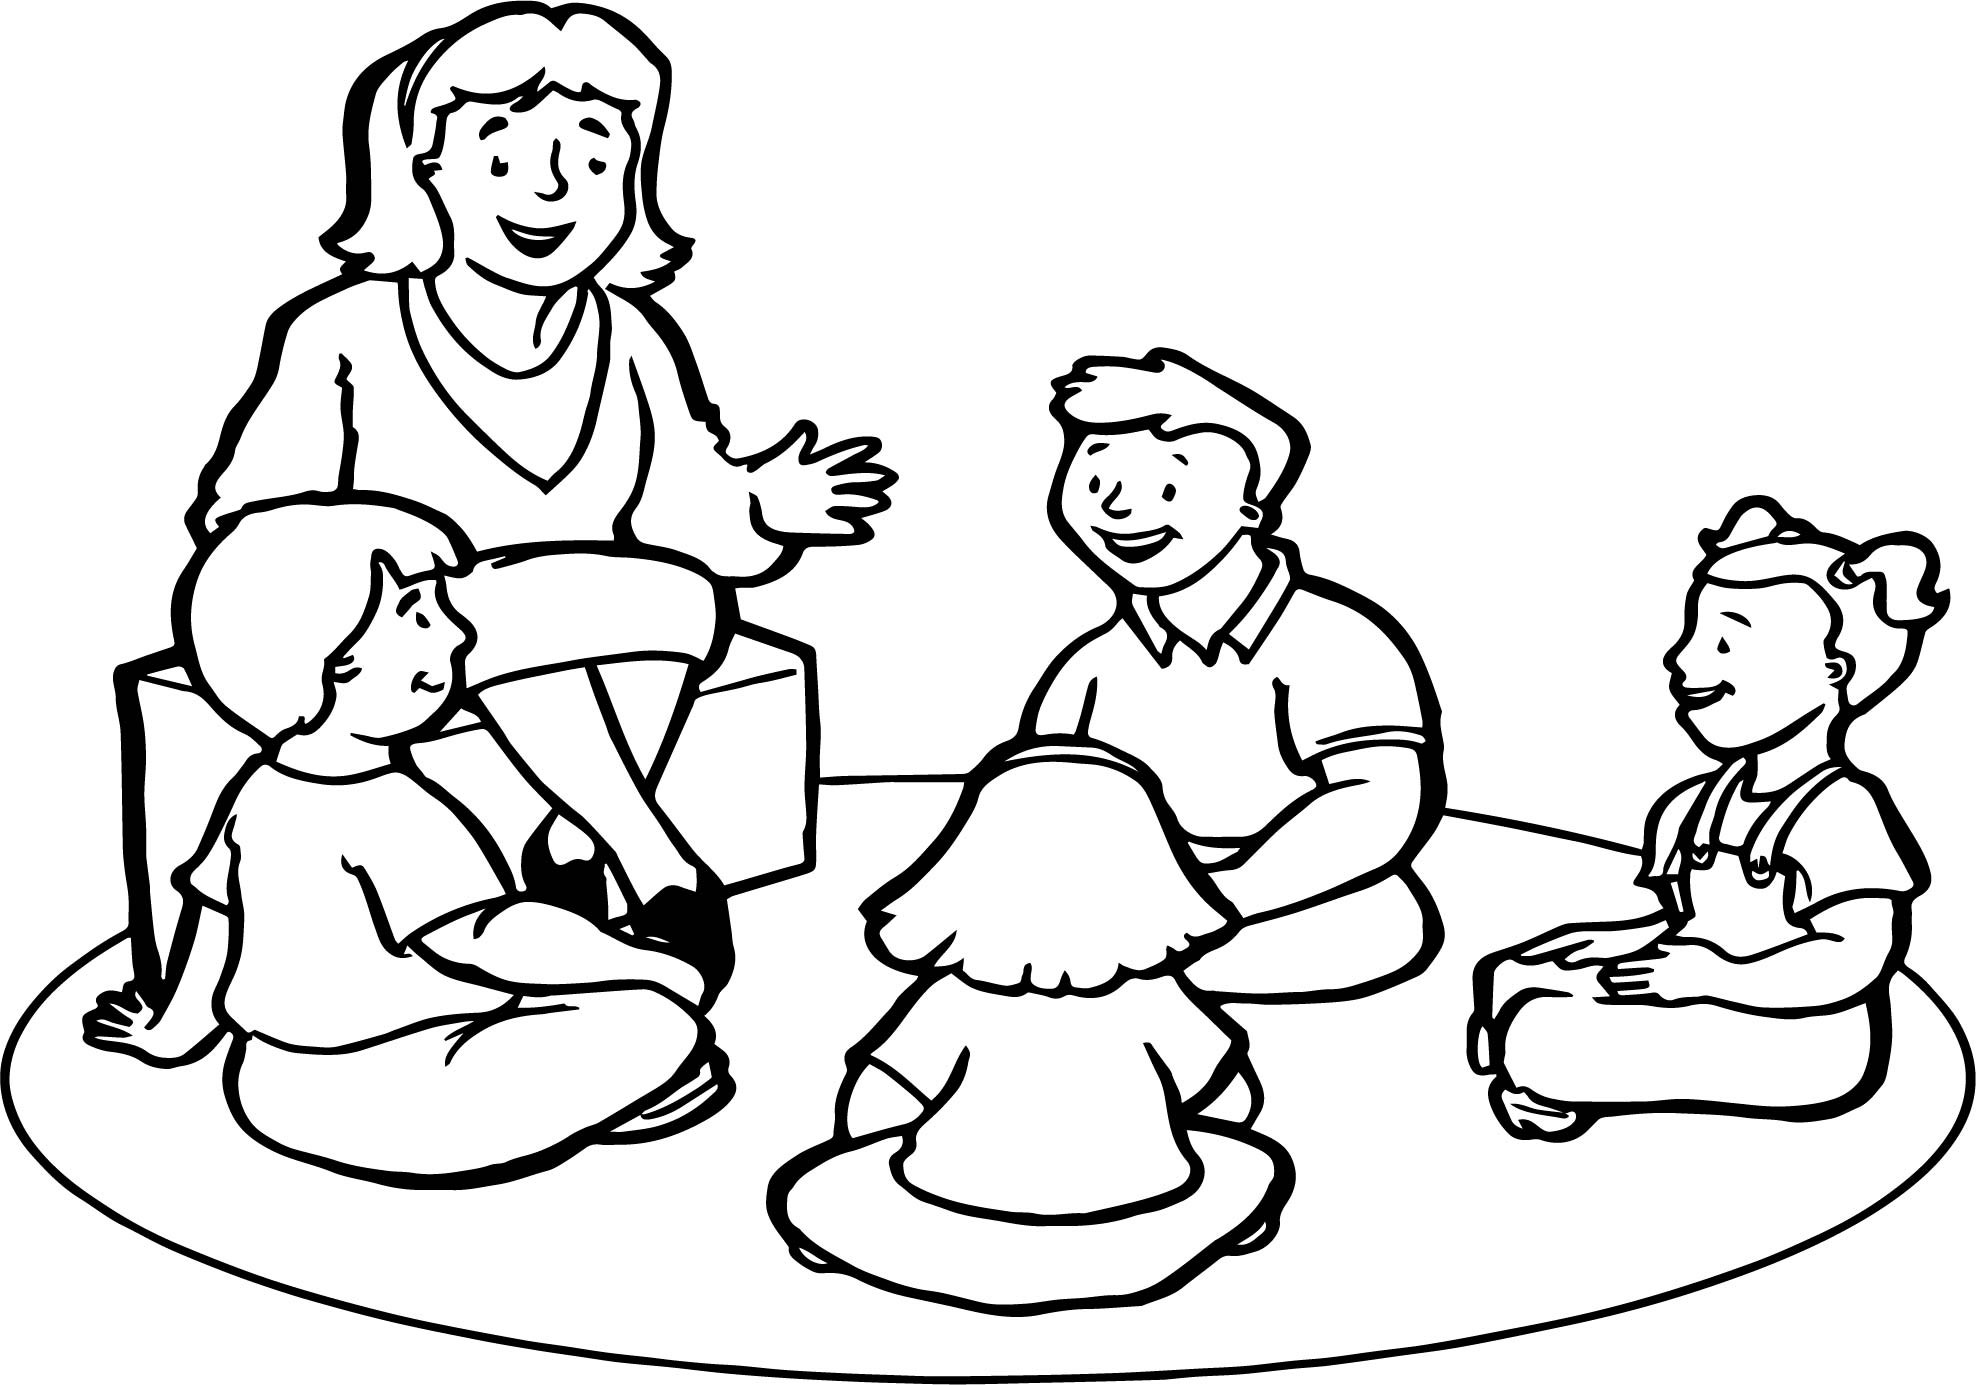 Teachers Coloring Pages  English Teacher Childrens Coloring Page